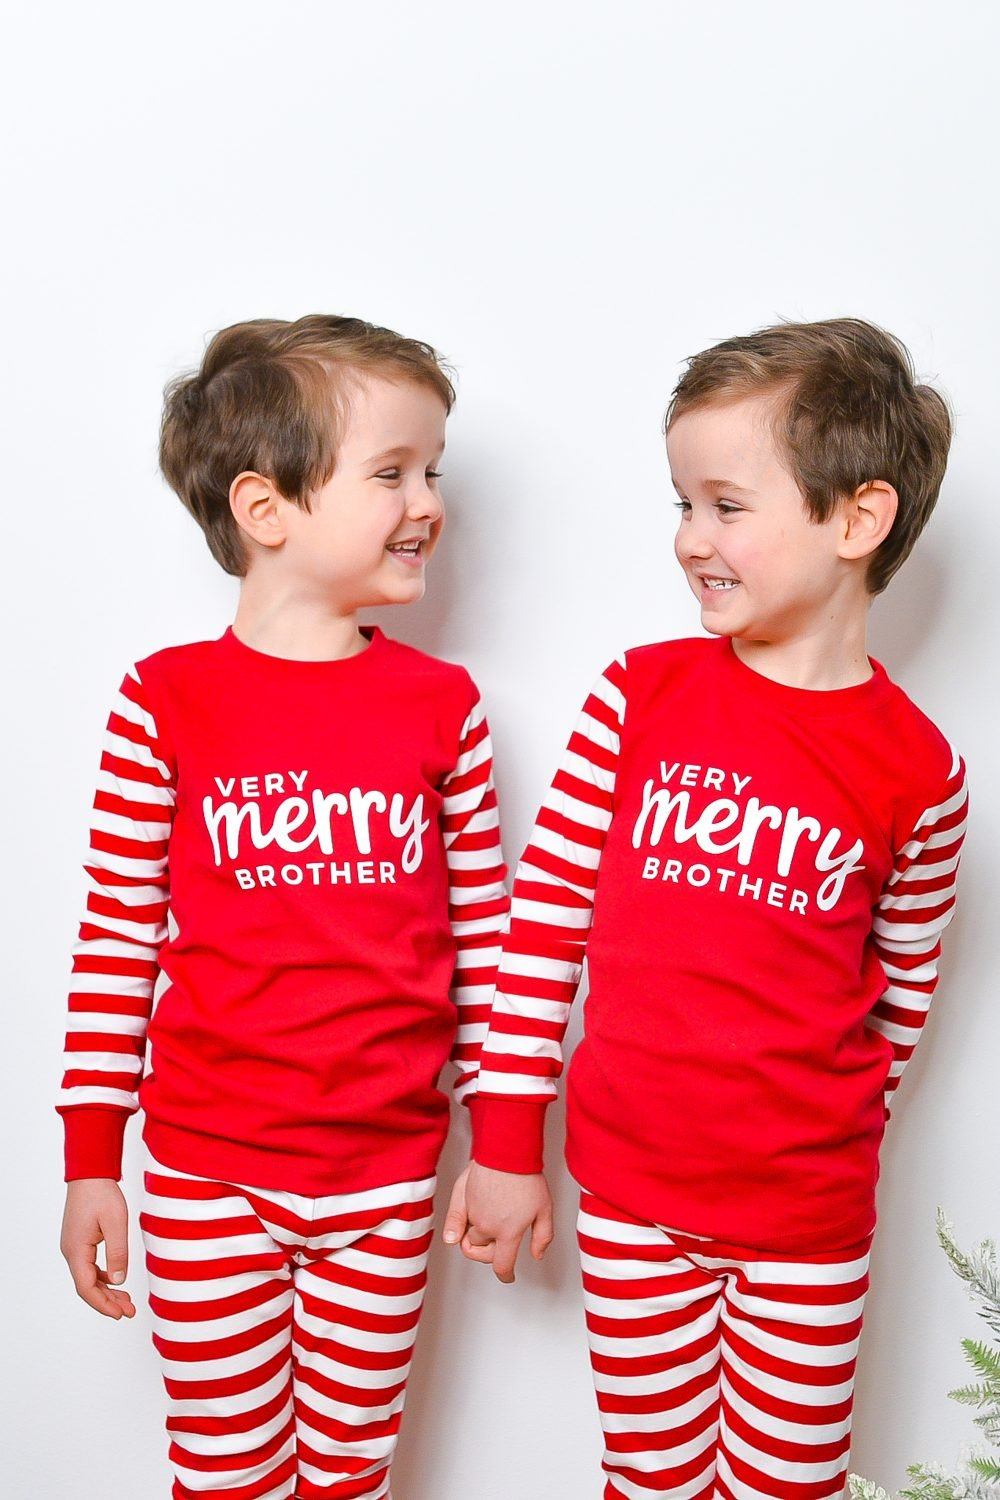 Boys wearing Very Merry Brother jammies